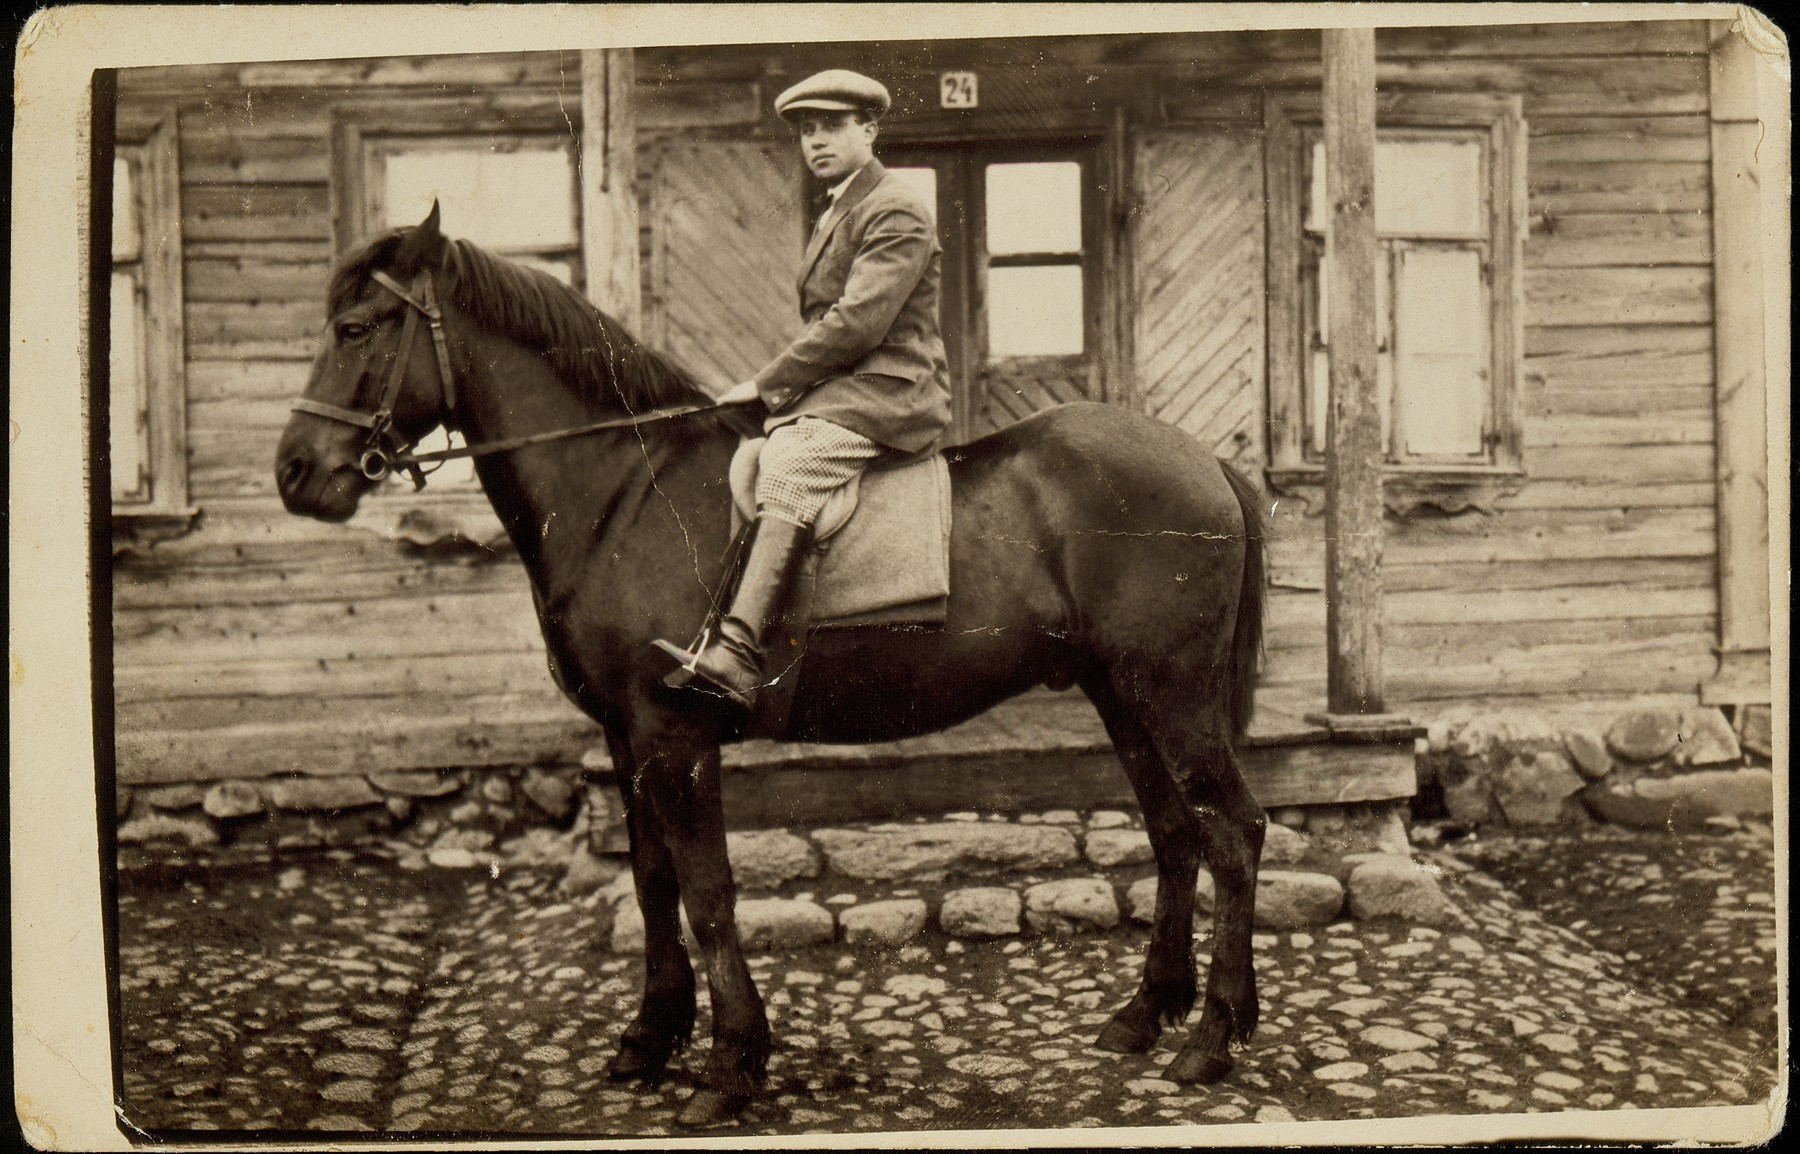 Benyamin Kabacznik riding one of his family's horses.  One of the village's best riders, Kabacznik led most of the local parades.  This photo was inscribed to Naftali Berkowitch on the eve of his departure for Palestine.